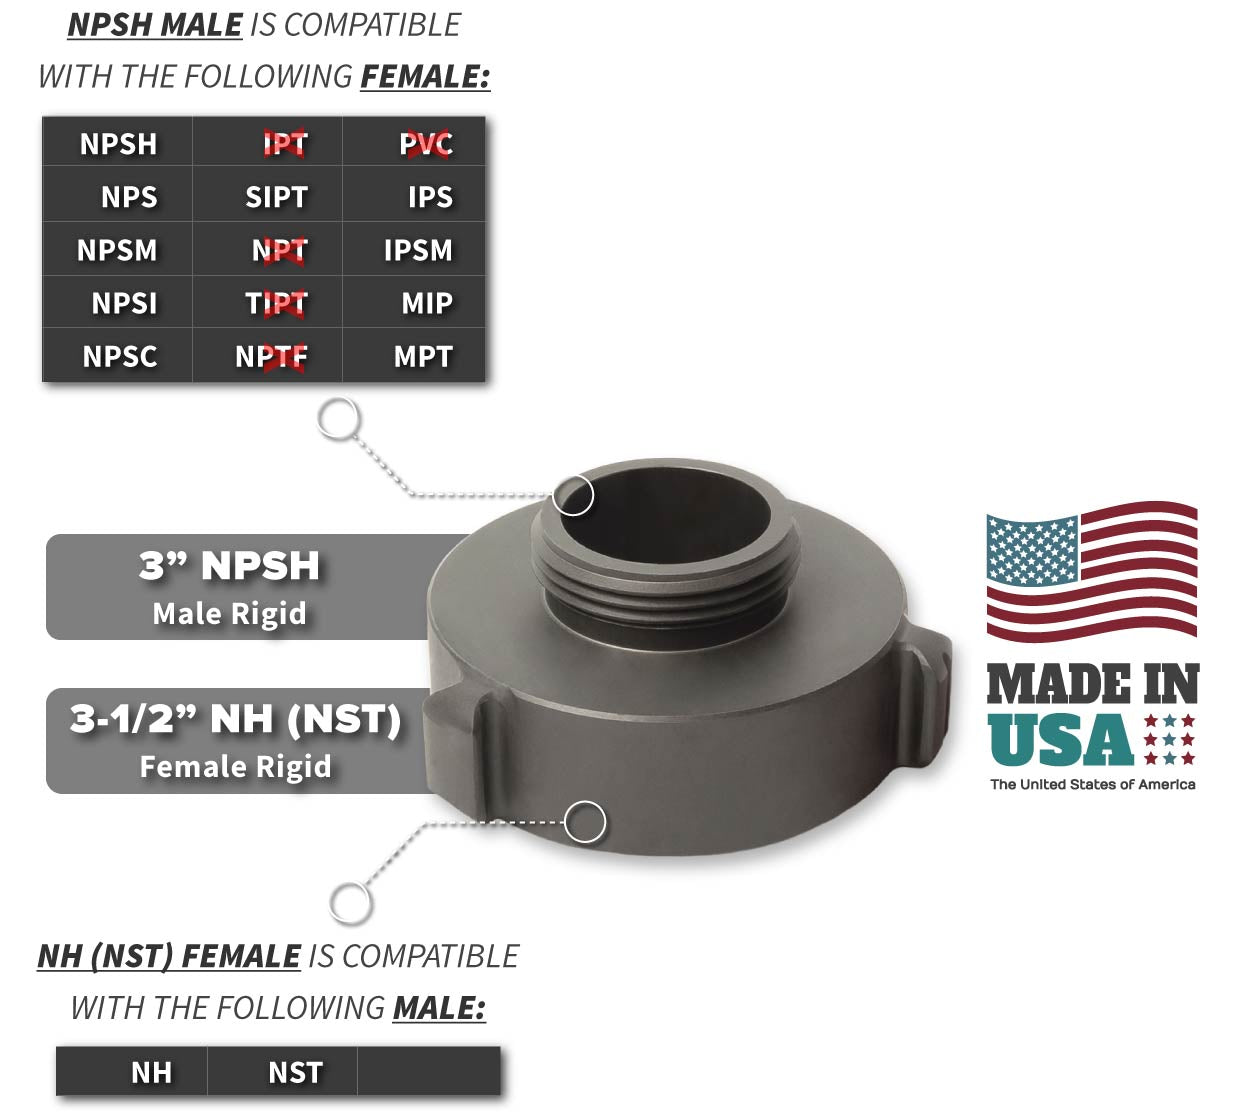 3.5 Inch NH-NST Female x 3 Inch NPSH Male Compatibility Thread Chart